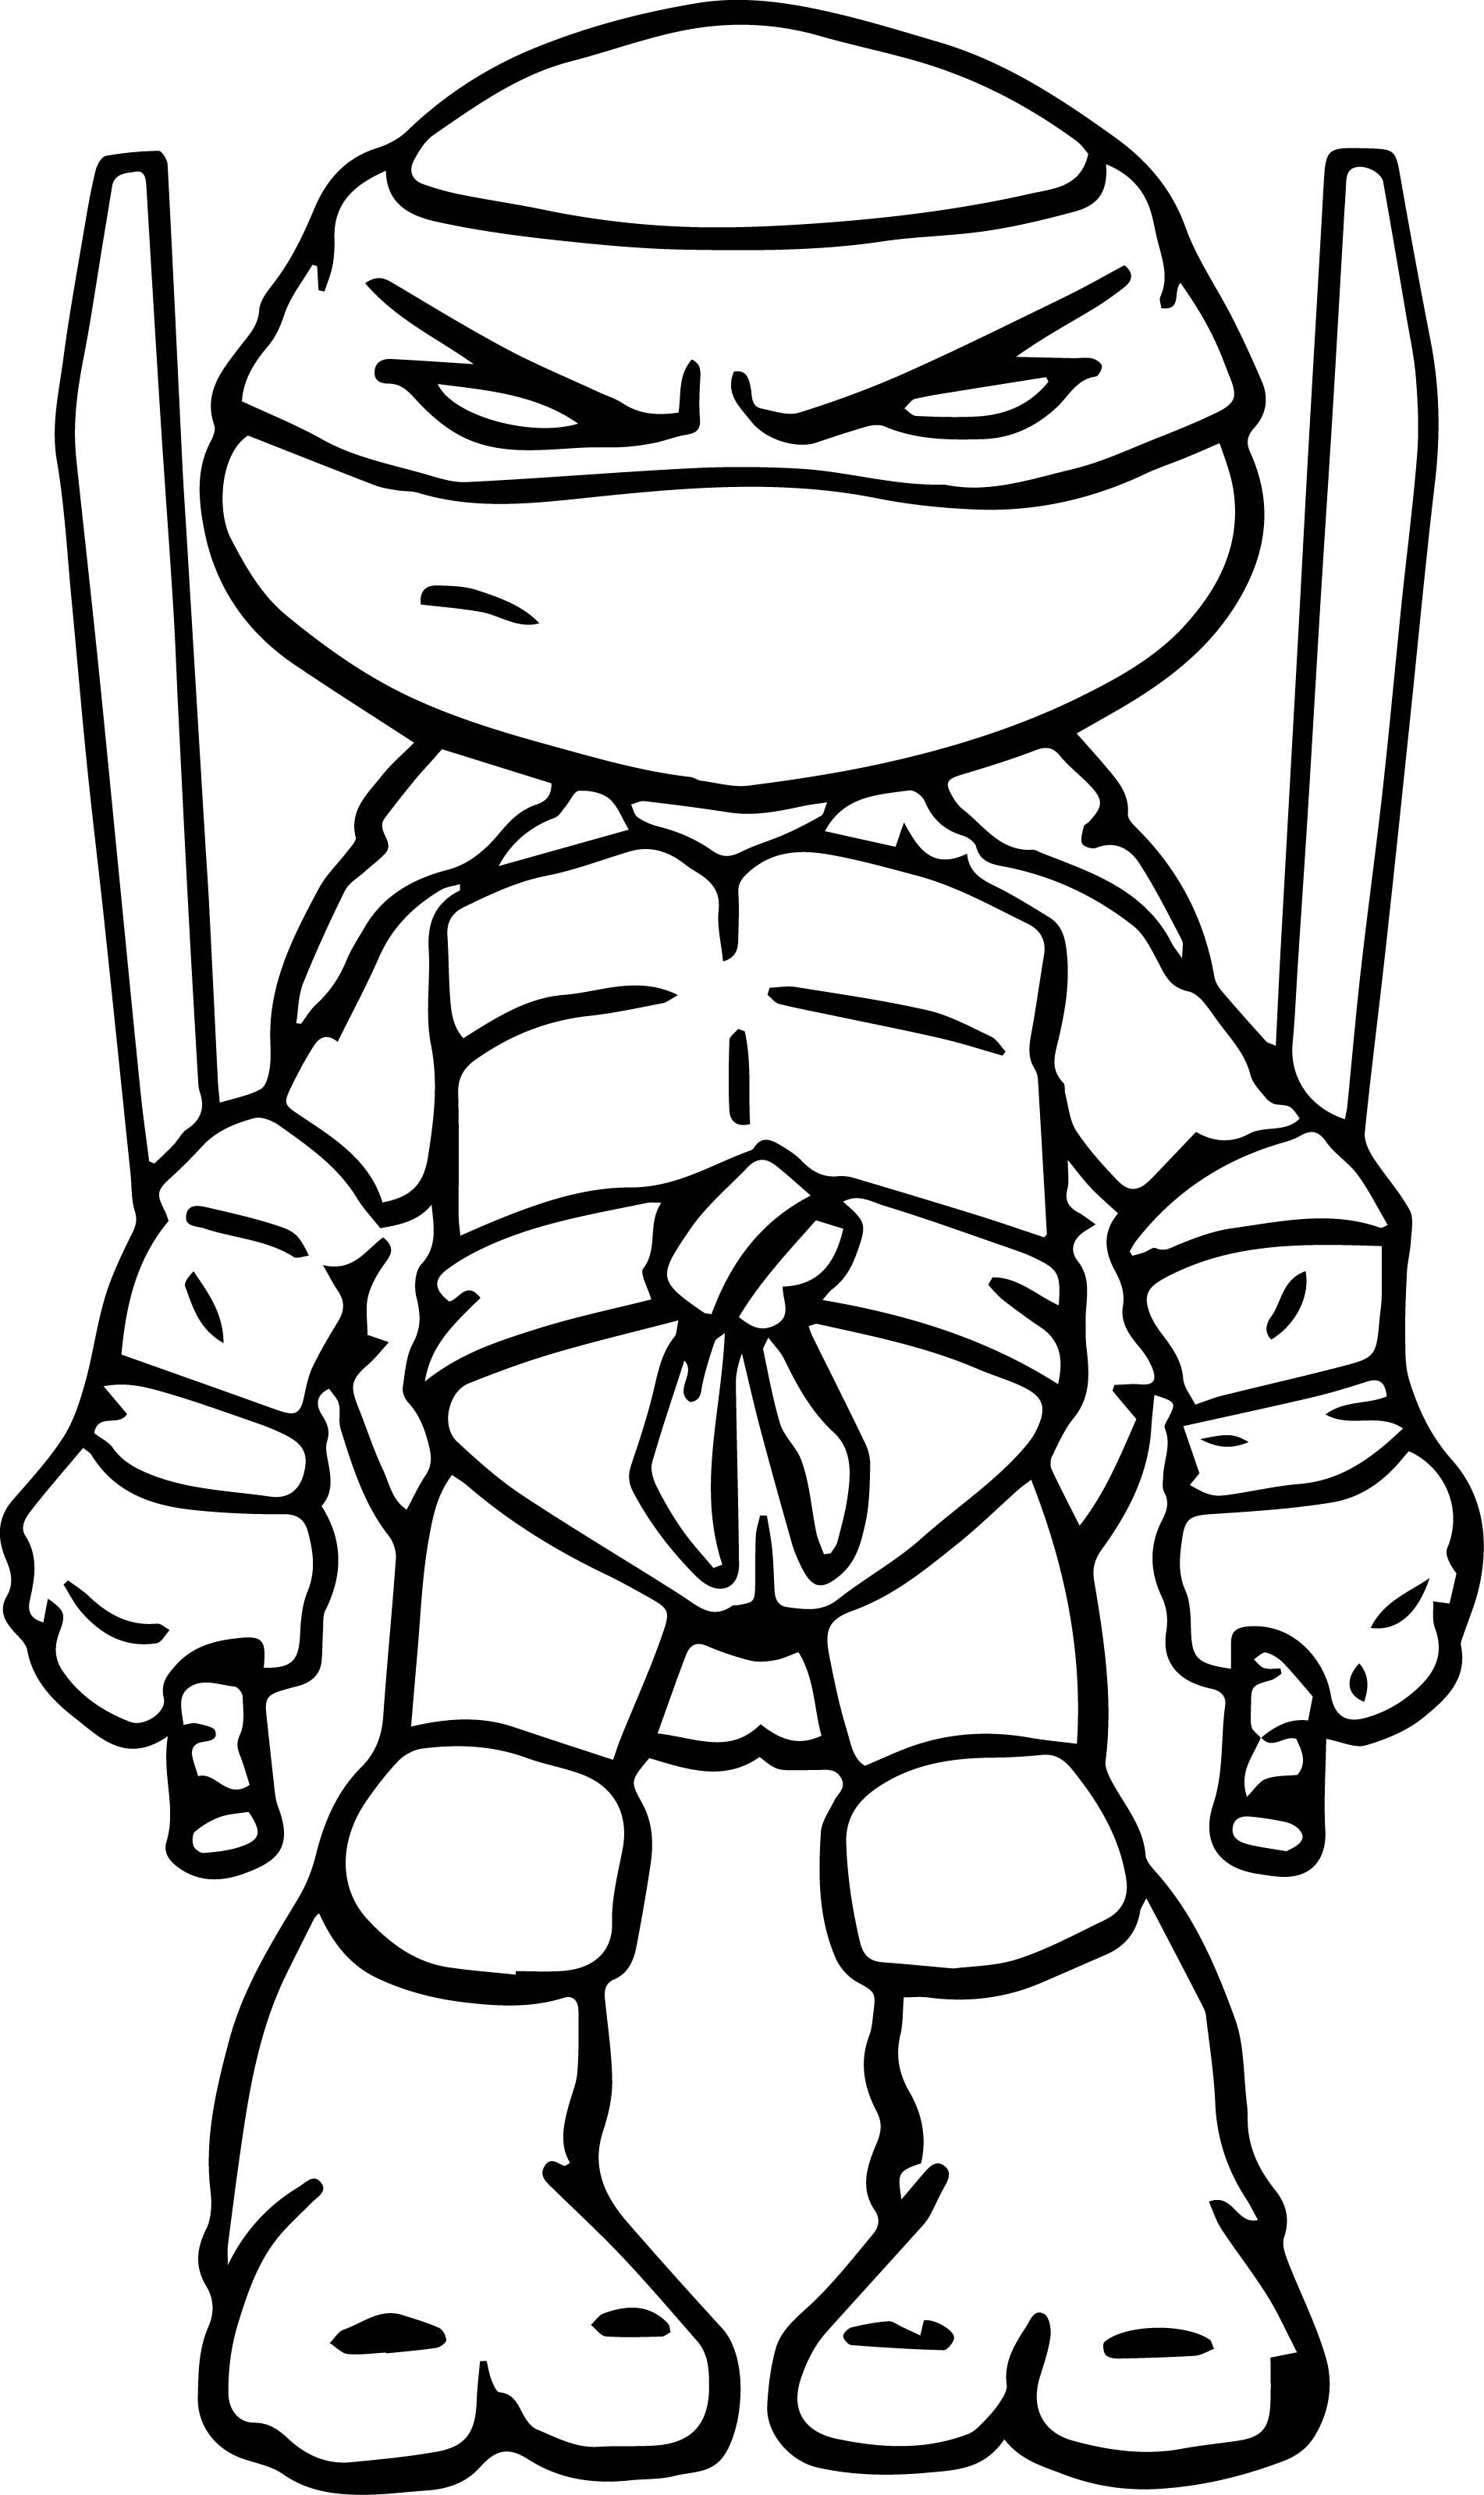 Ninja Turtles Art Coloring Page